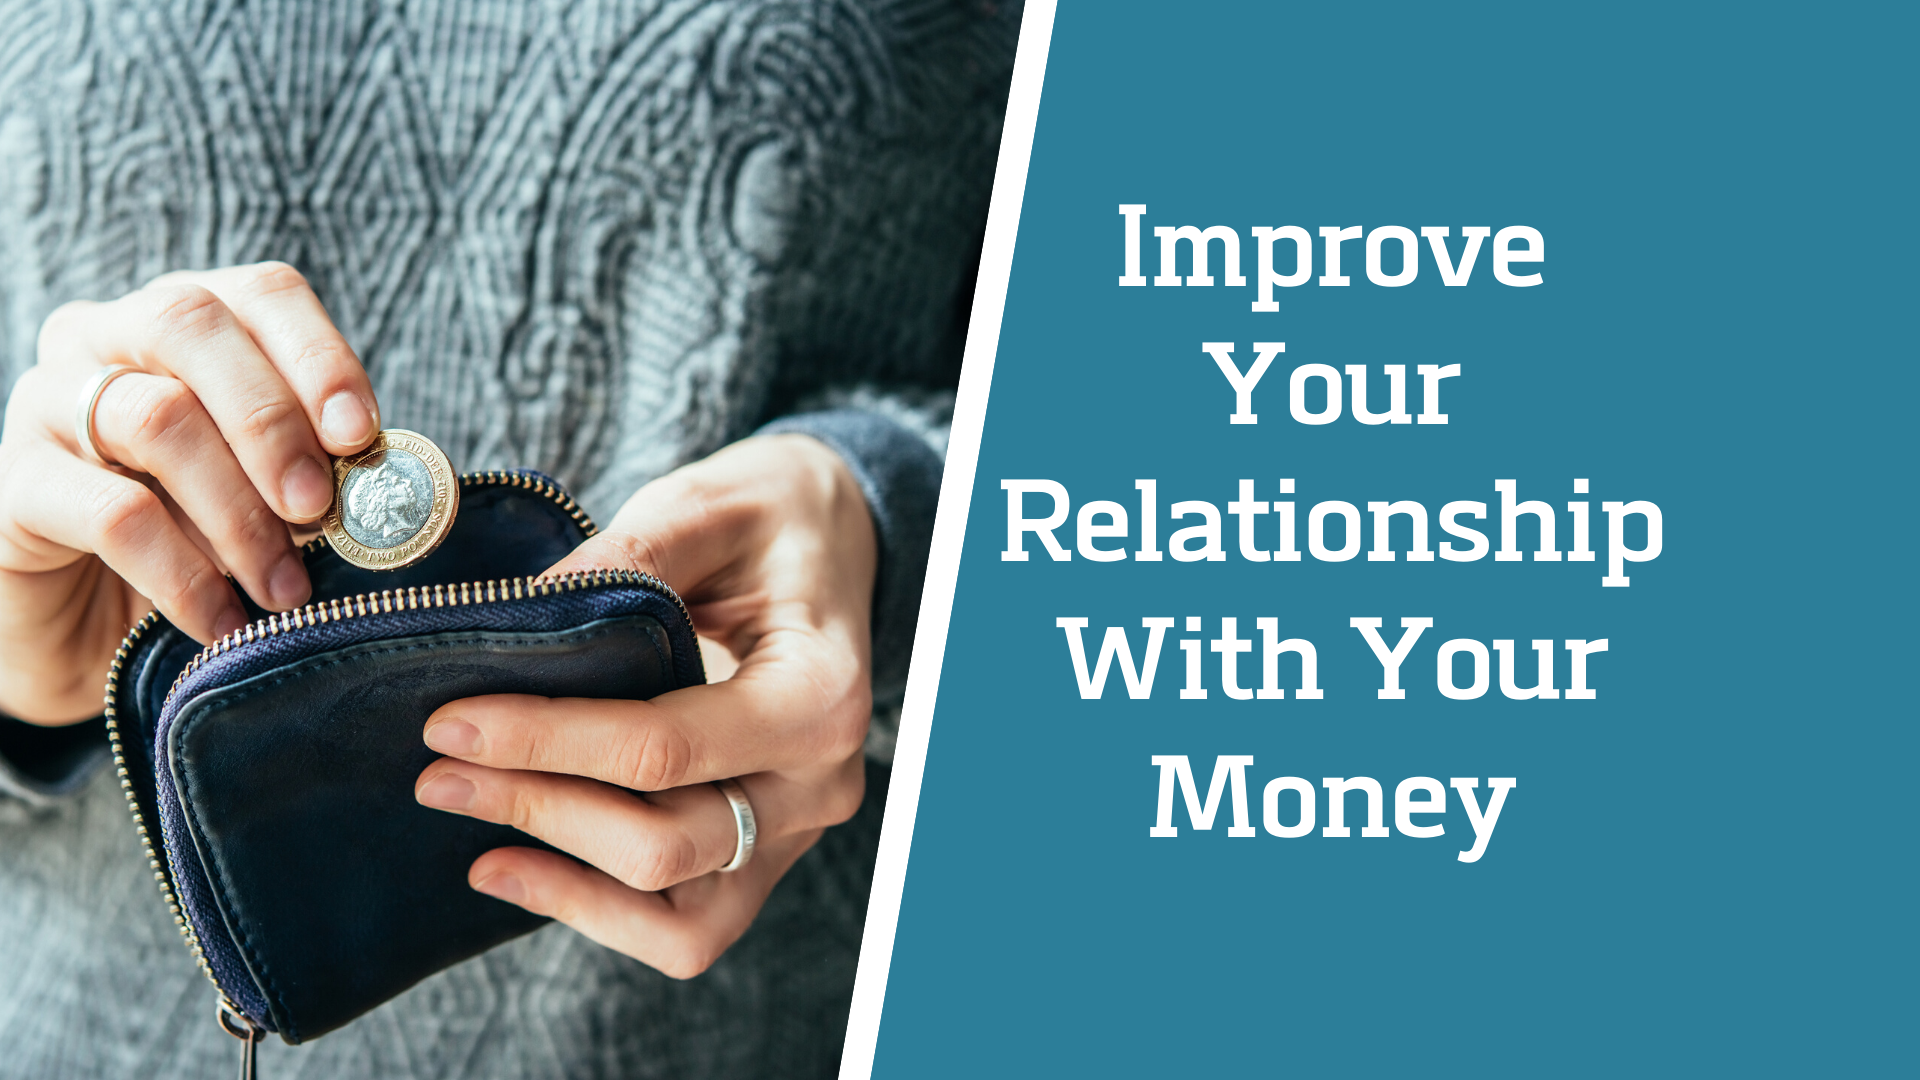 Improve Your Relationship with Money by Answering These 5 Questions